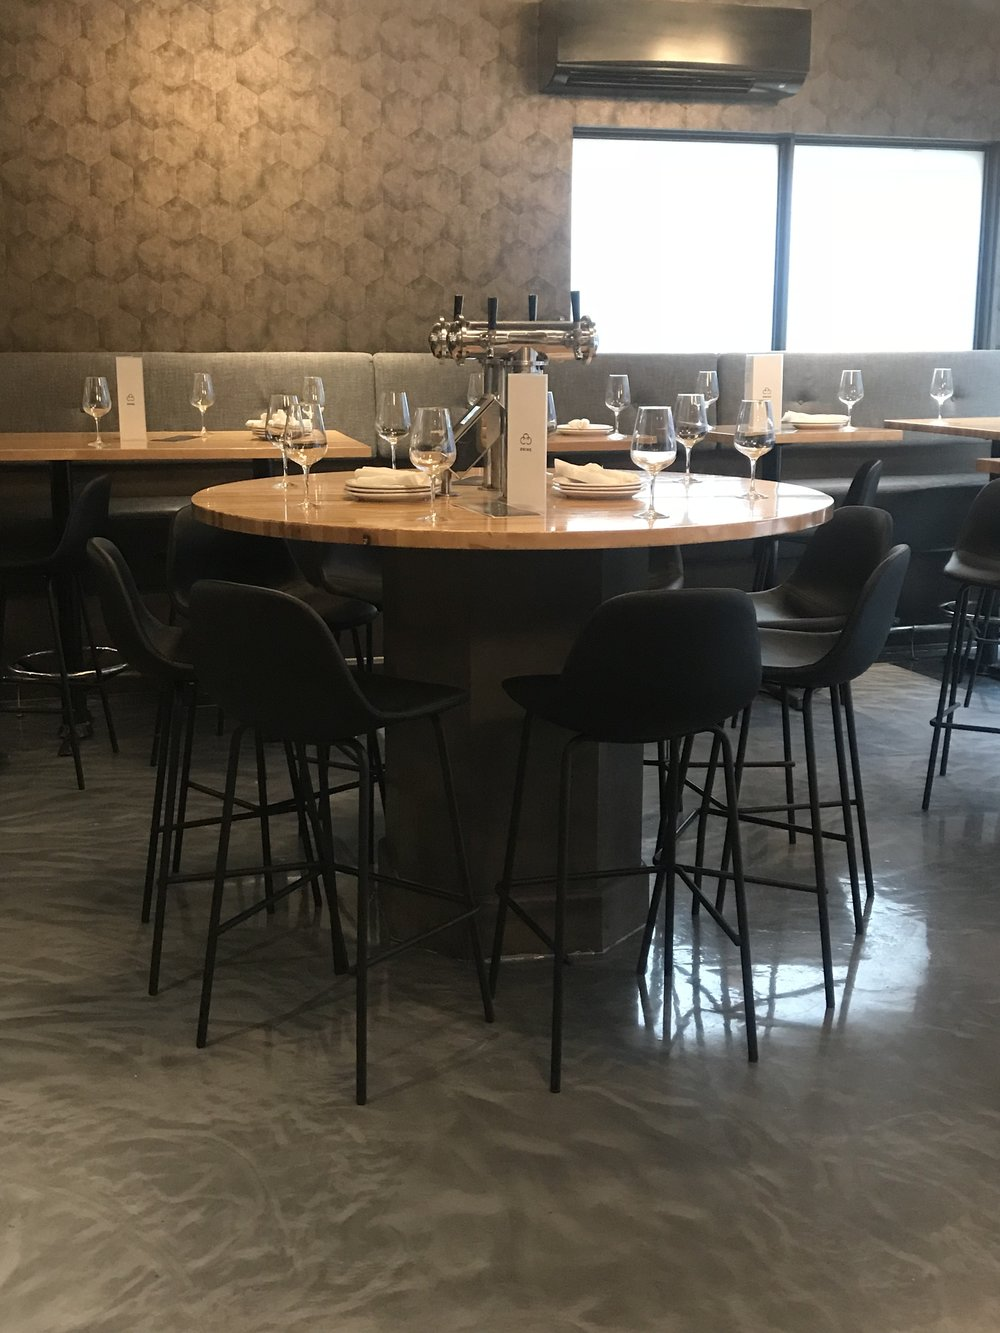 Blue Moon Furniture store in winnipeg. Commercial furniture. Carbone Coal Fired Pizza. Barstools.JPG